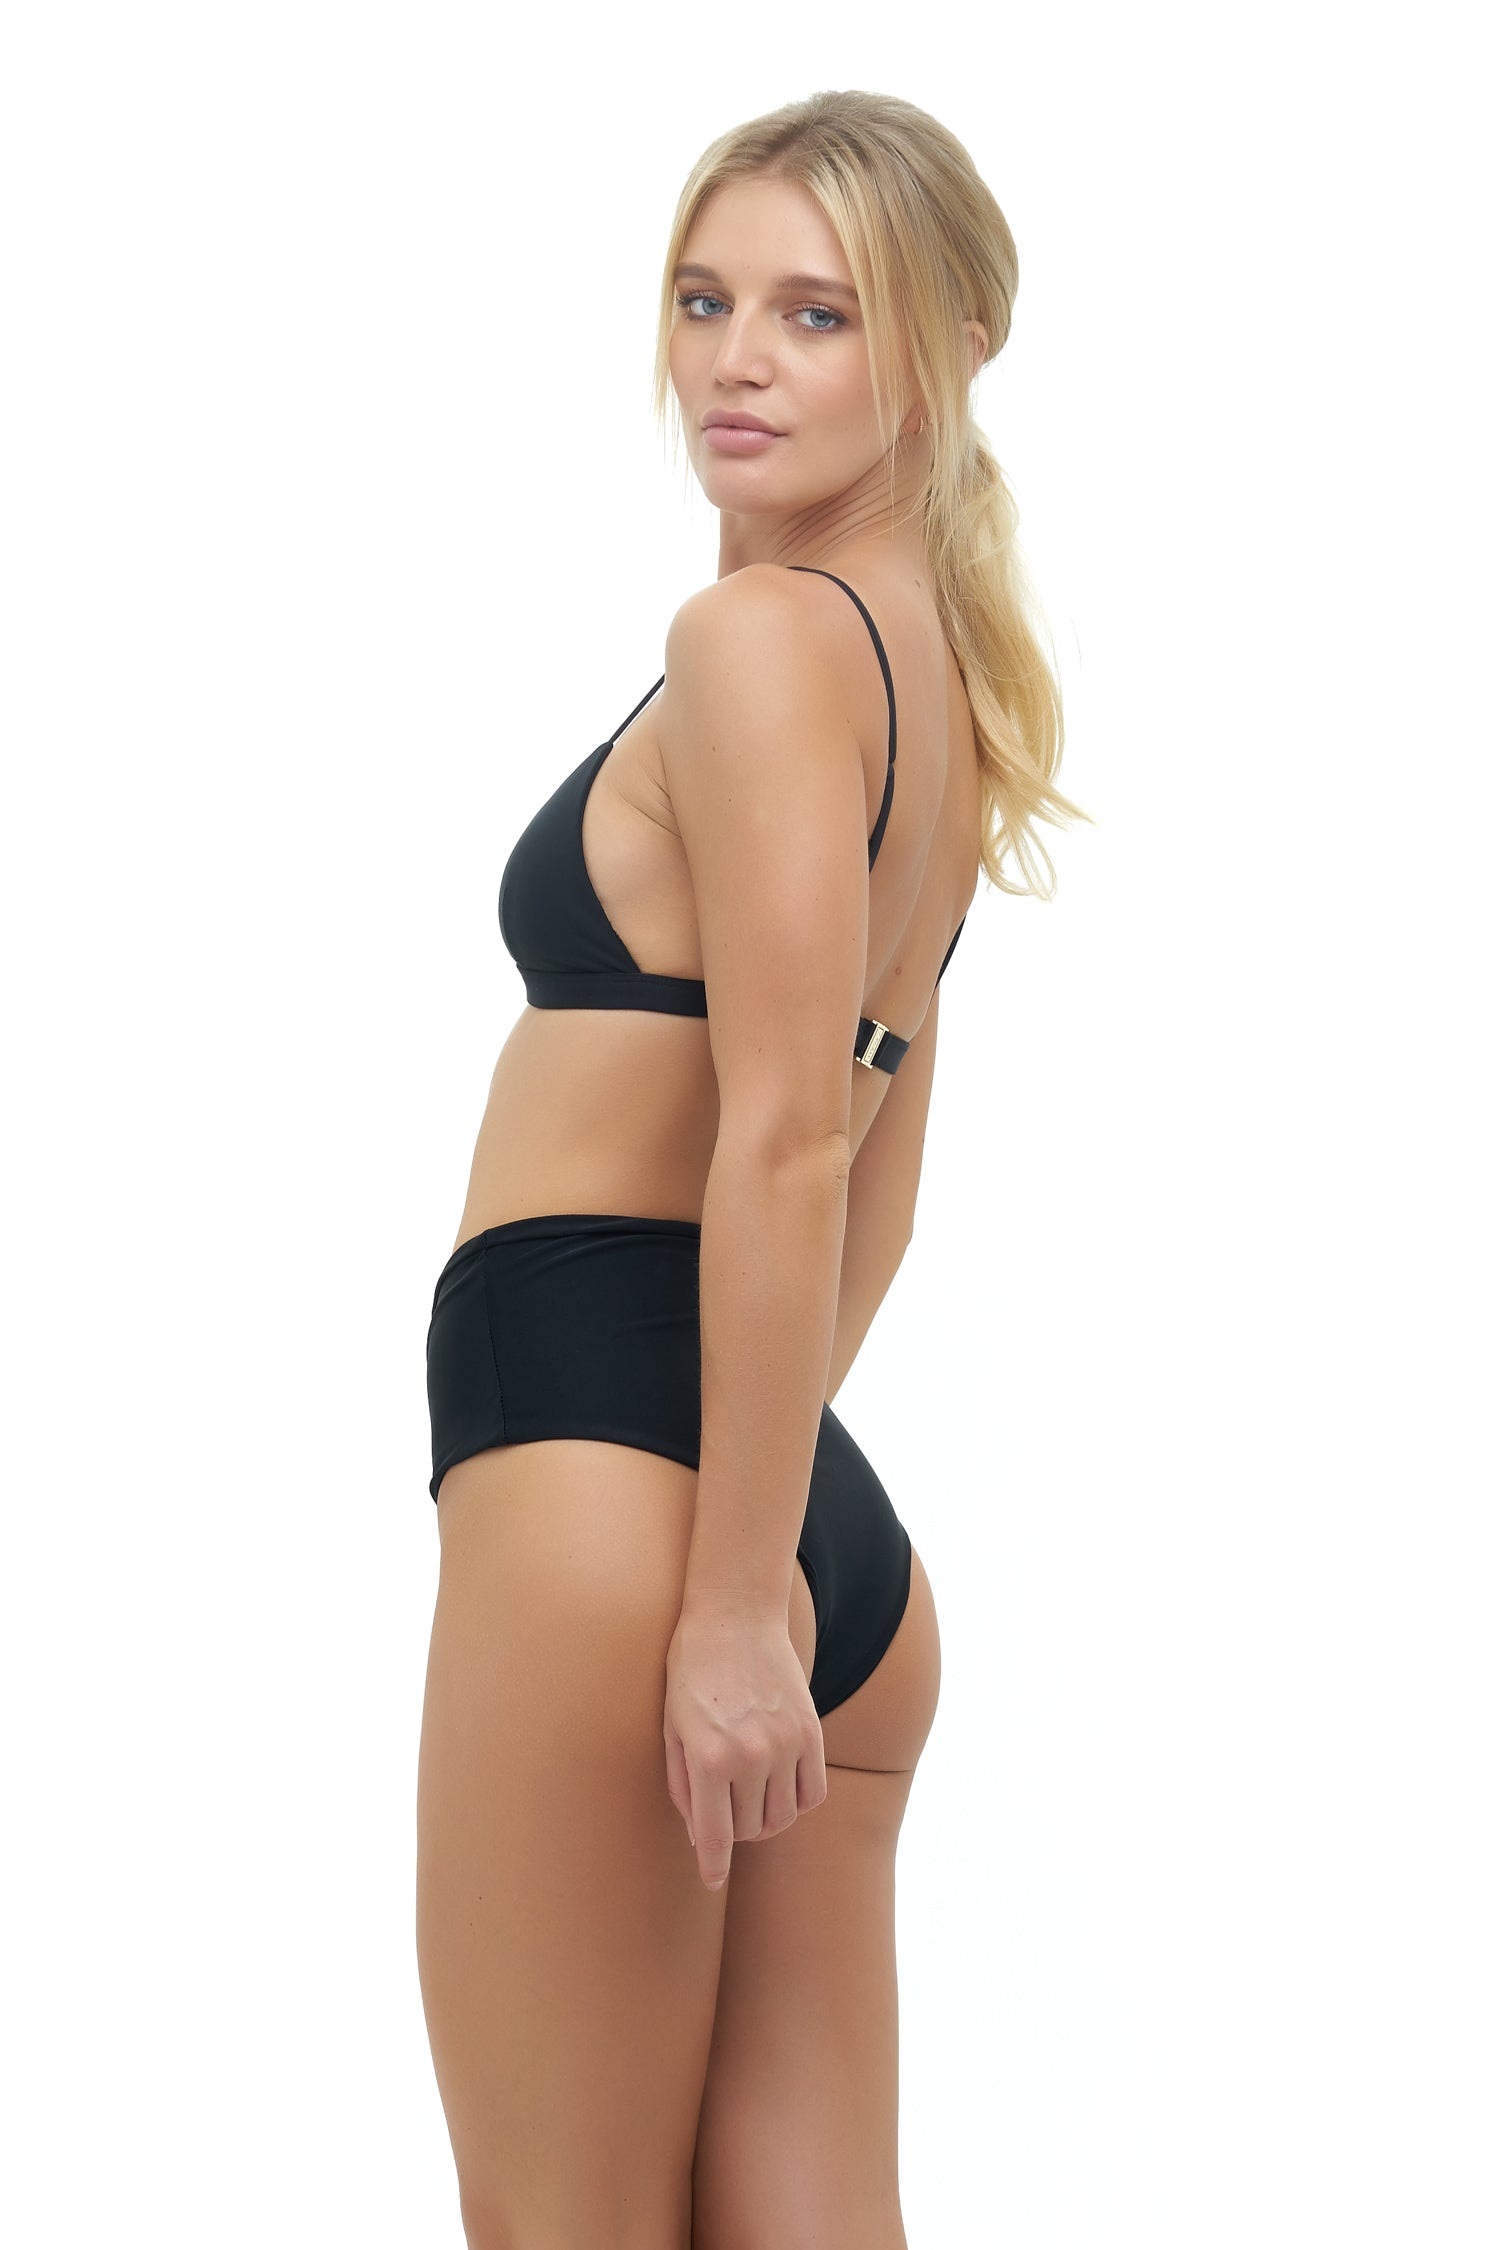 Storm Swimwear - Cannes - High Waist Bikini Bottom in Black